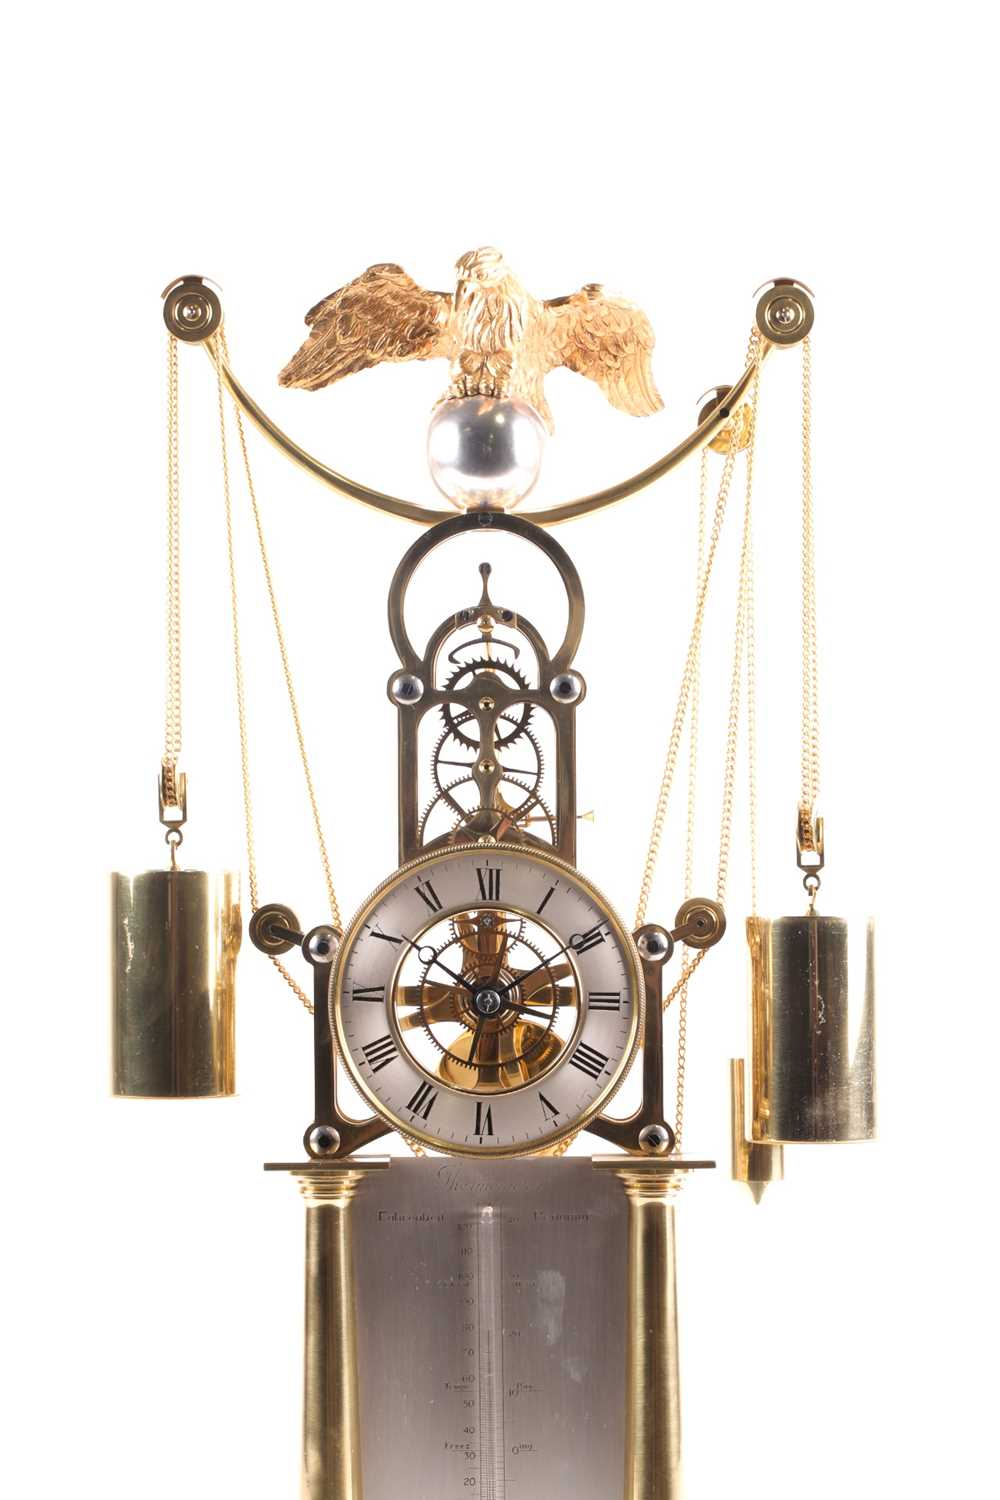 F.H. Whitlock. A French-style twin weight driven brass skeleton timepiece mantle timepiece with - Image 9 of 9